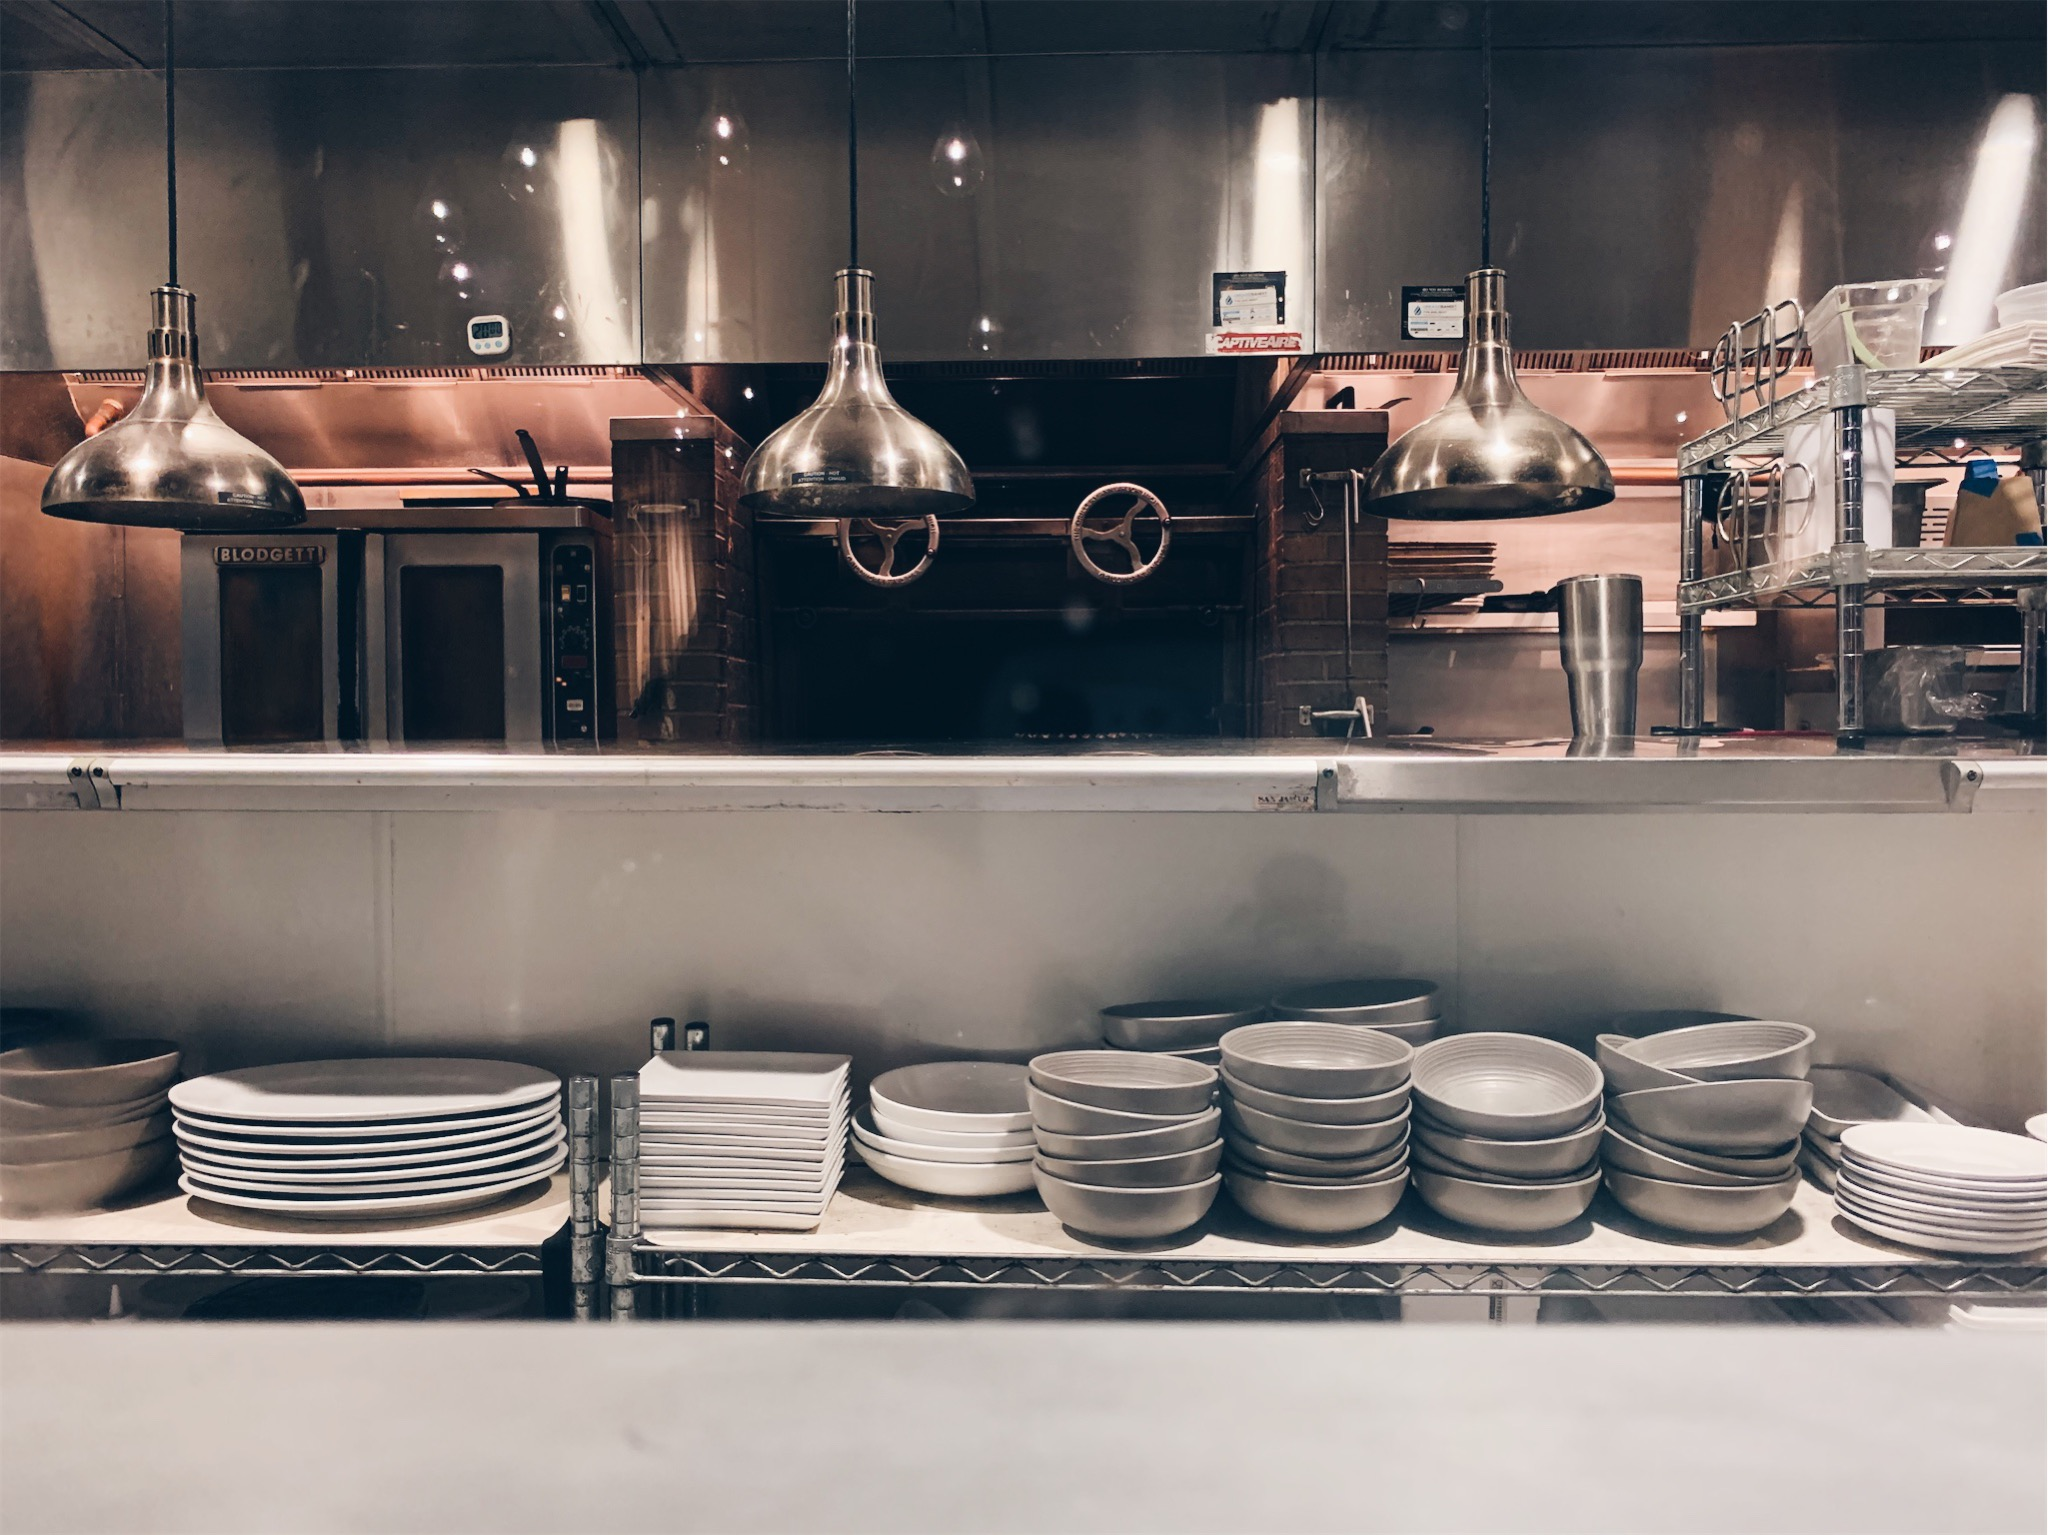 Equipment and plating areas in back-of-house kitchen interior